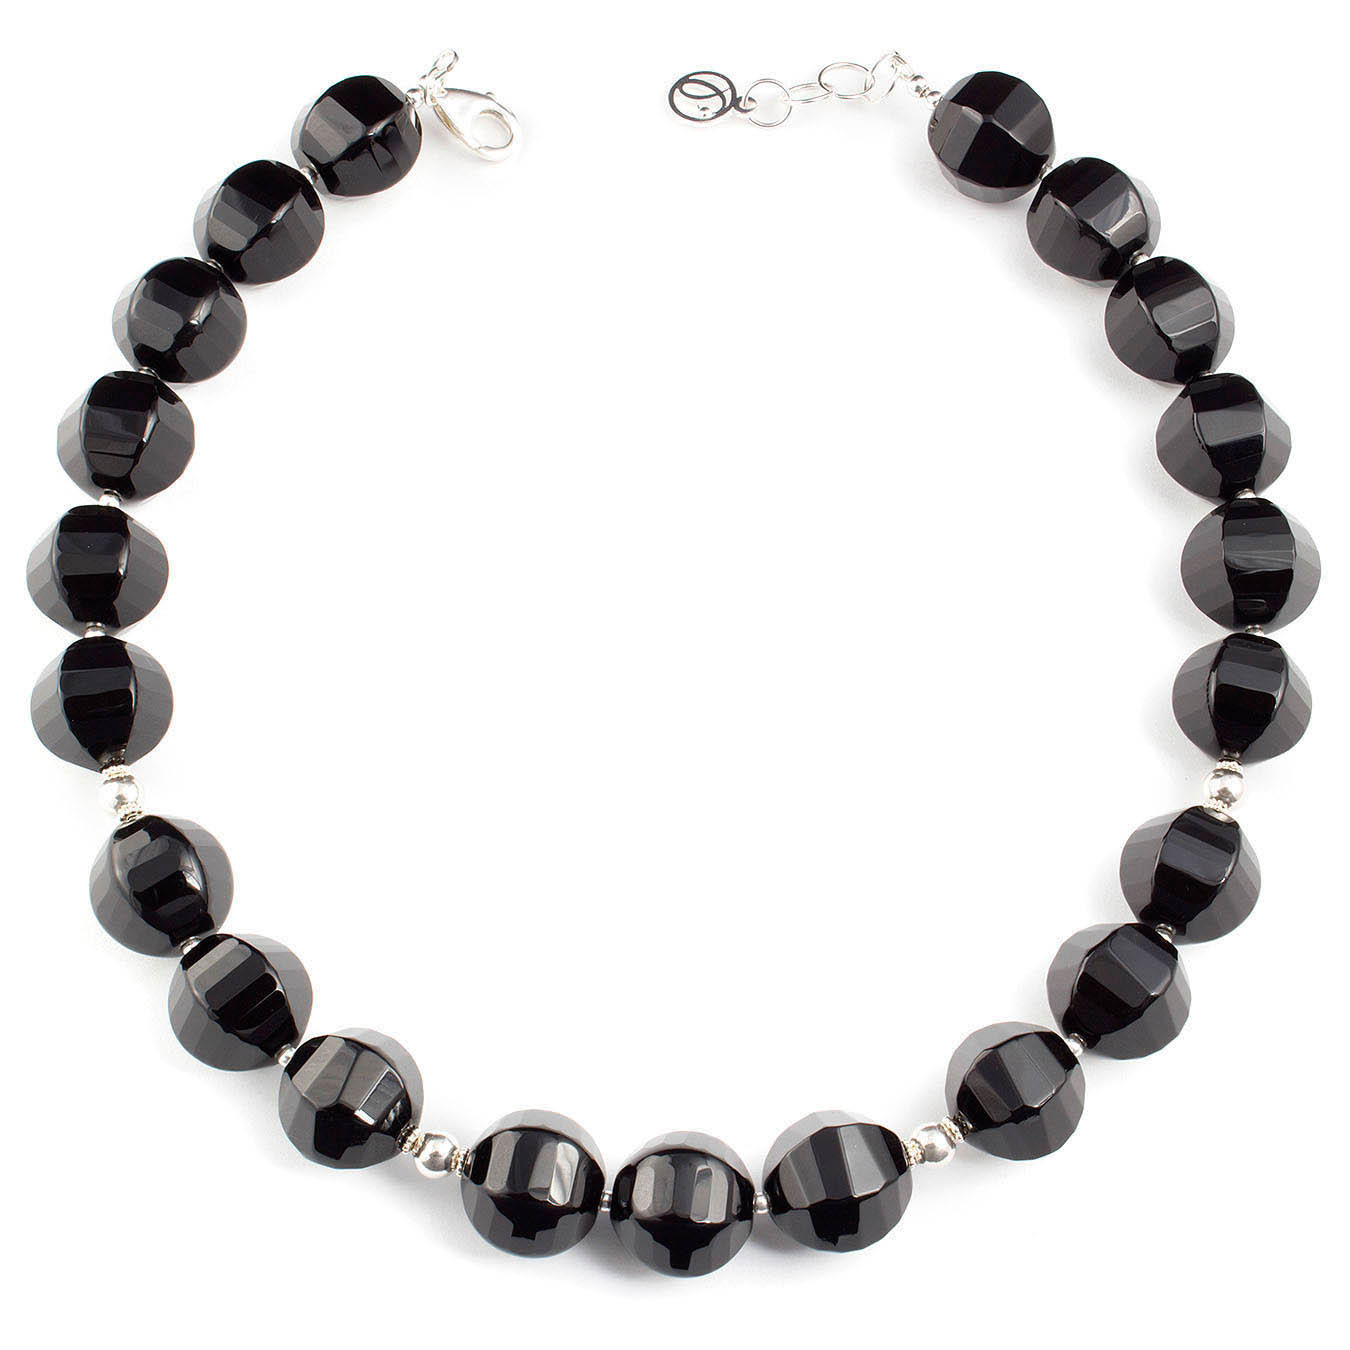 Chunky necklace set made with faceted black agate and 925 silver beads